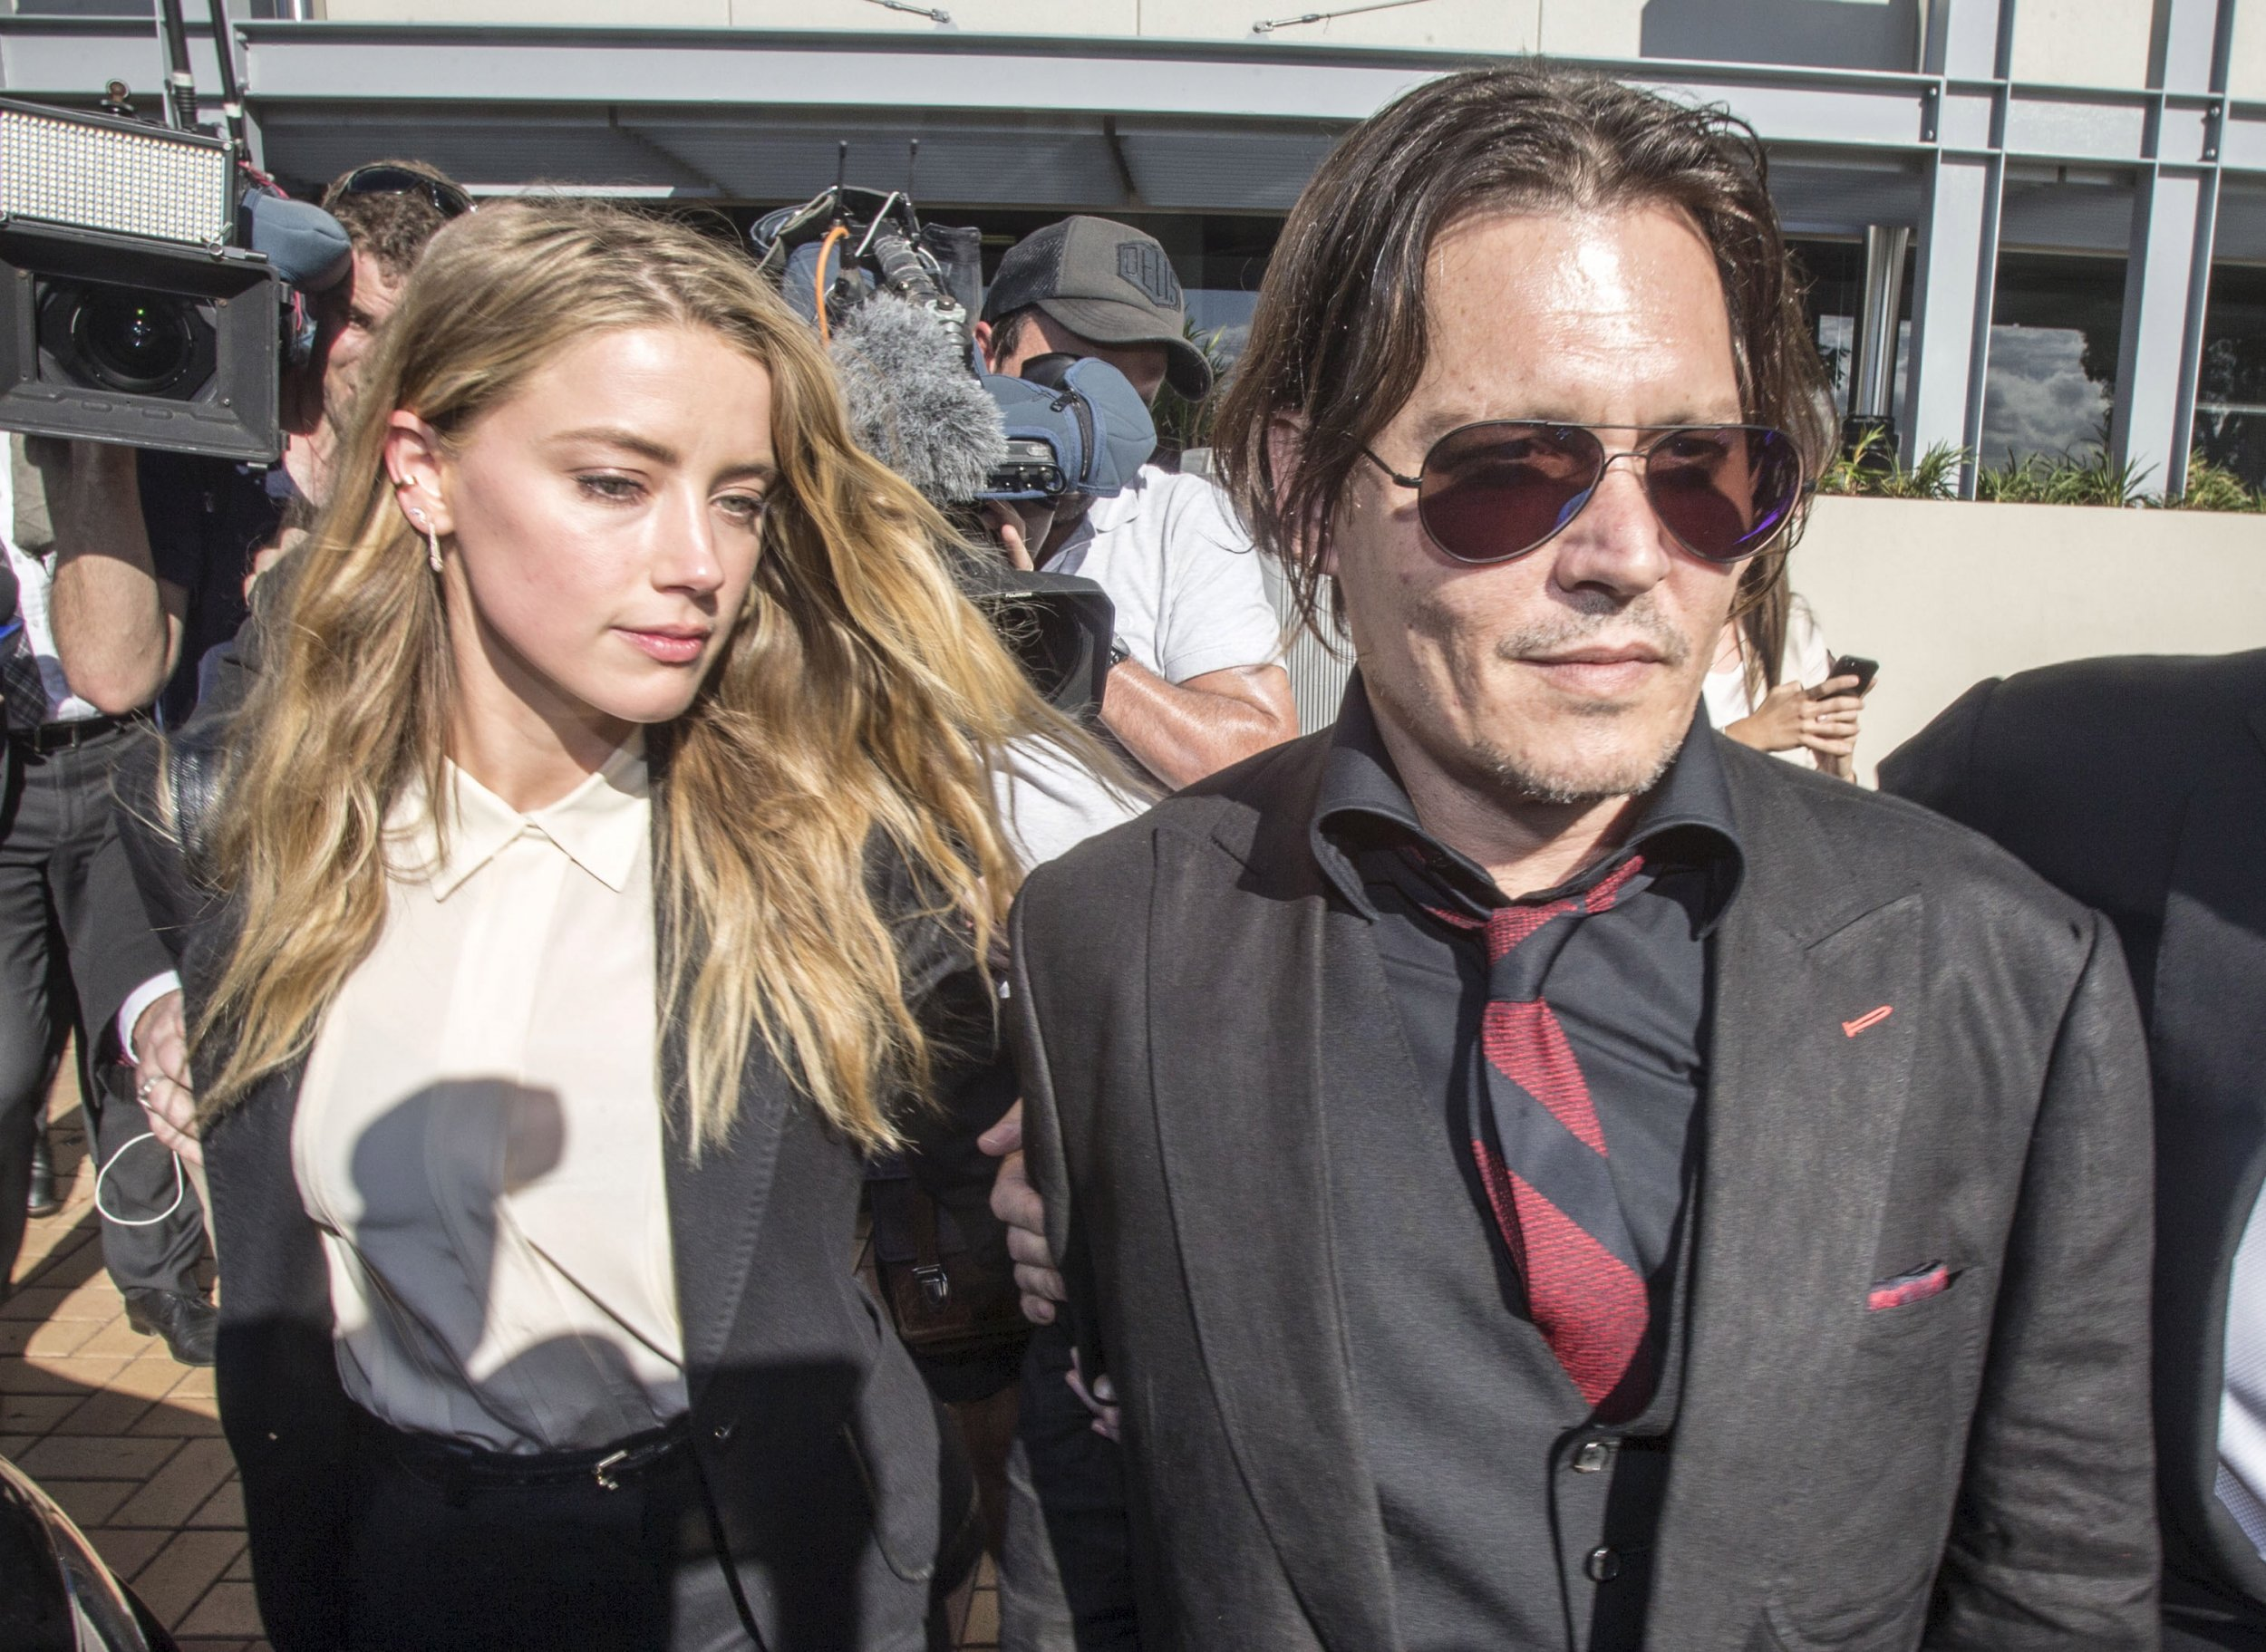 Johnny Depp and Amber Heard at court in Australia.